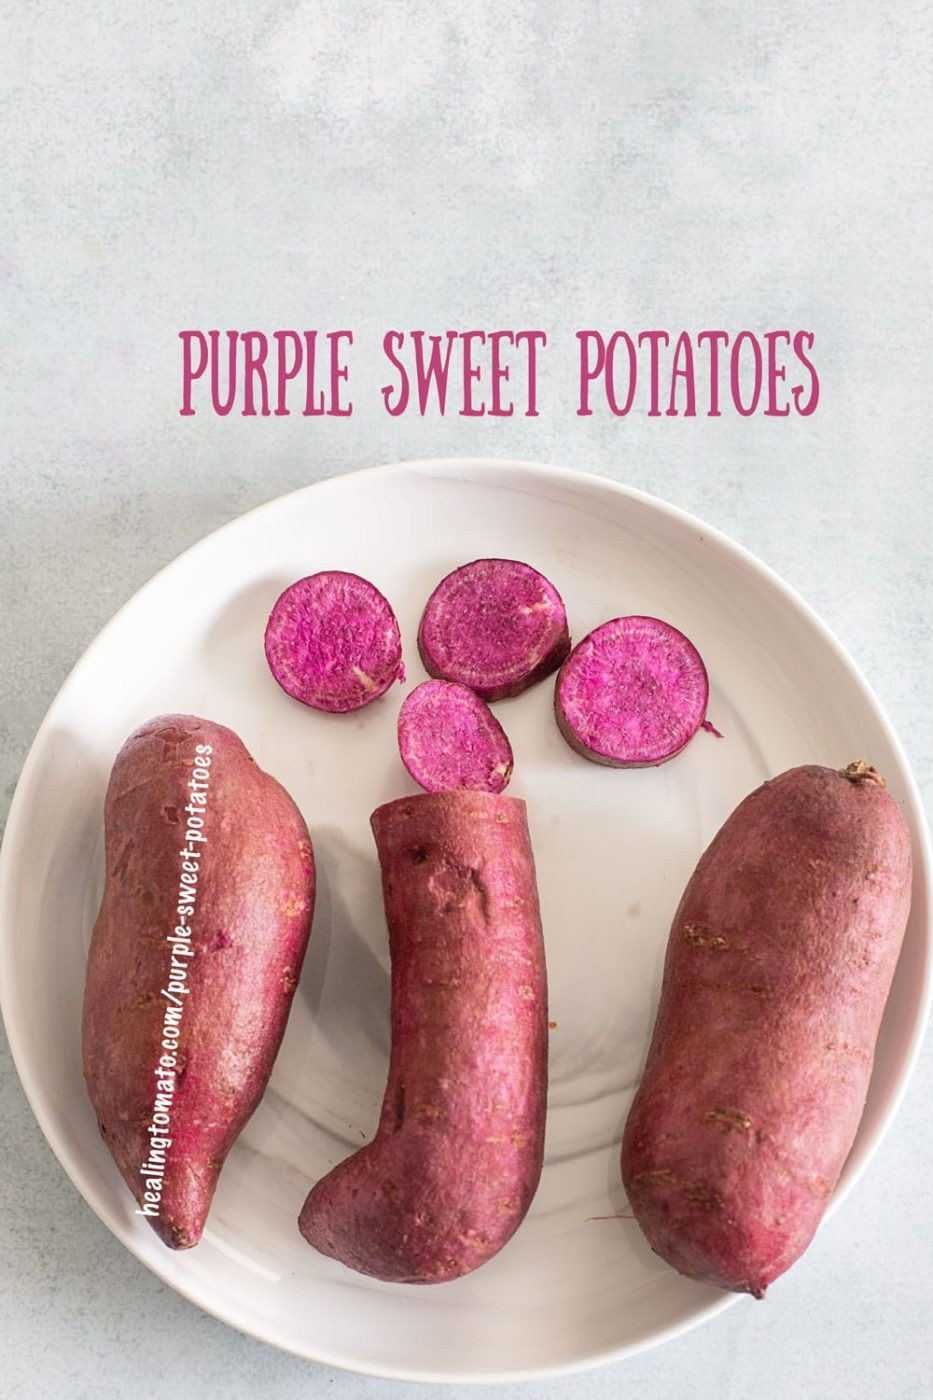 Top view of 3 baby purple sweet potoates with 4 round slices in the middle